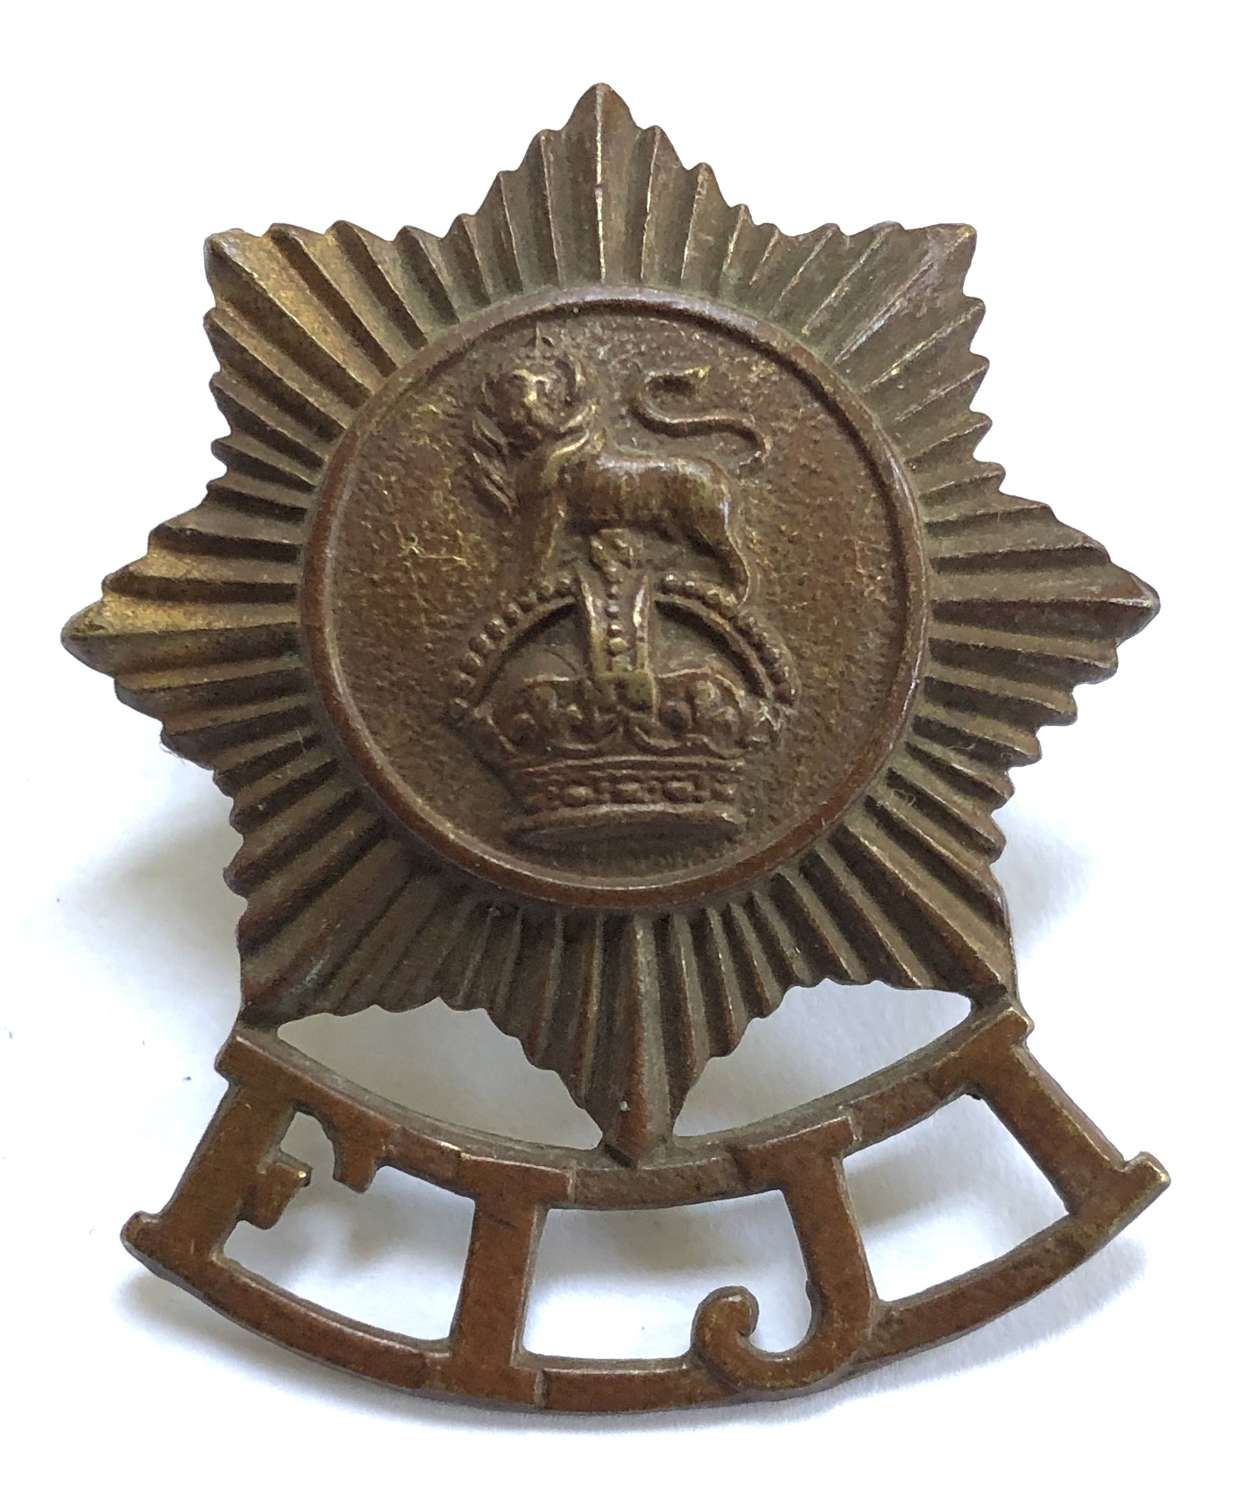 Fiji Defence Force brass cap badge with JR Gaunt, London